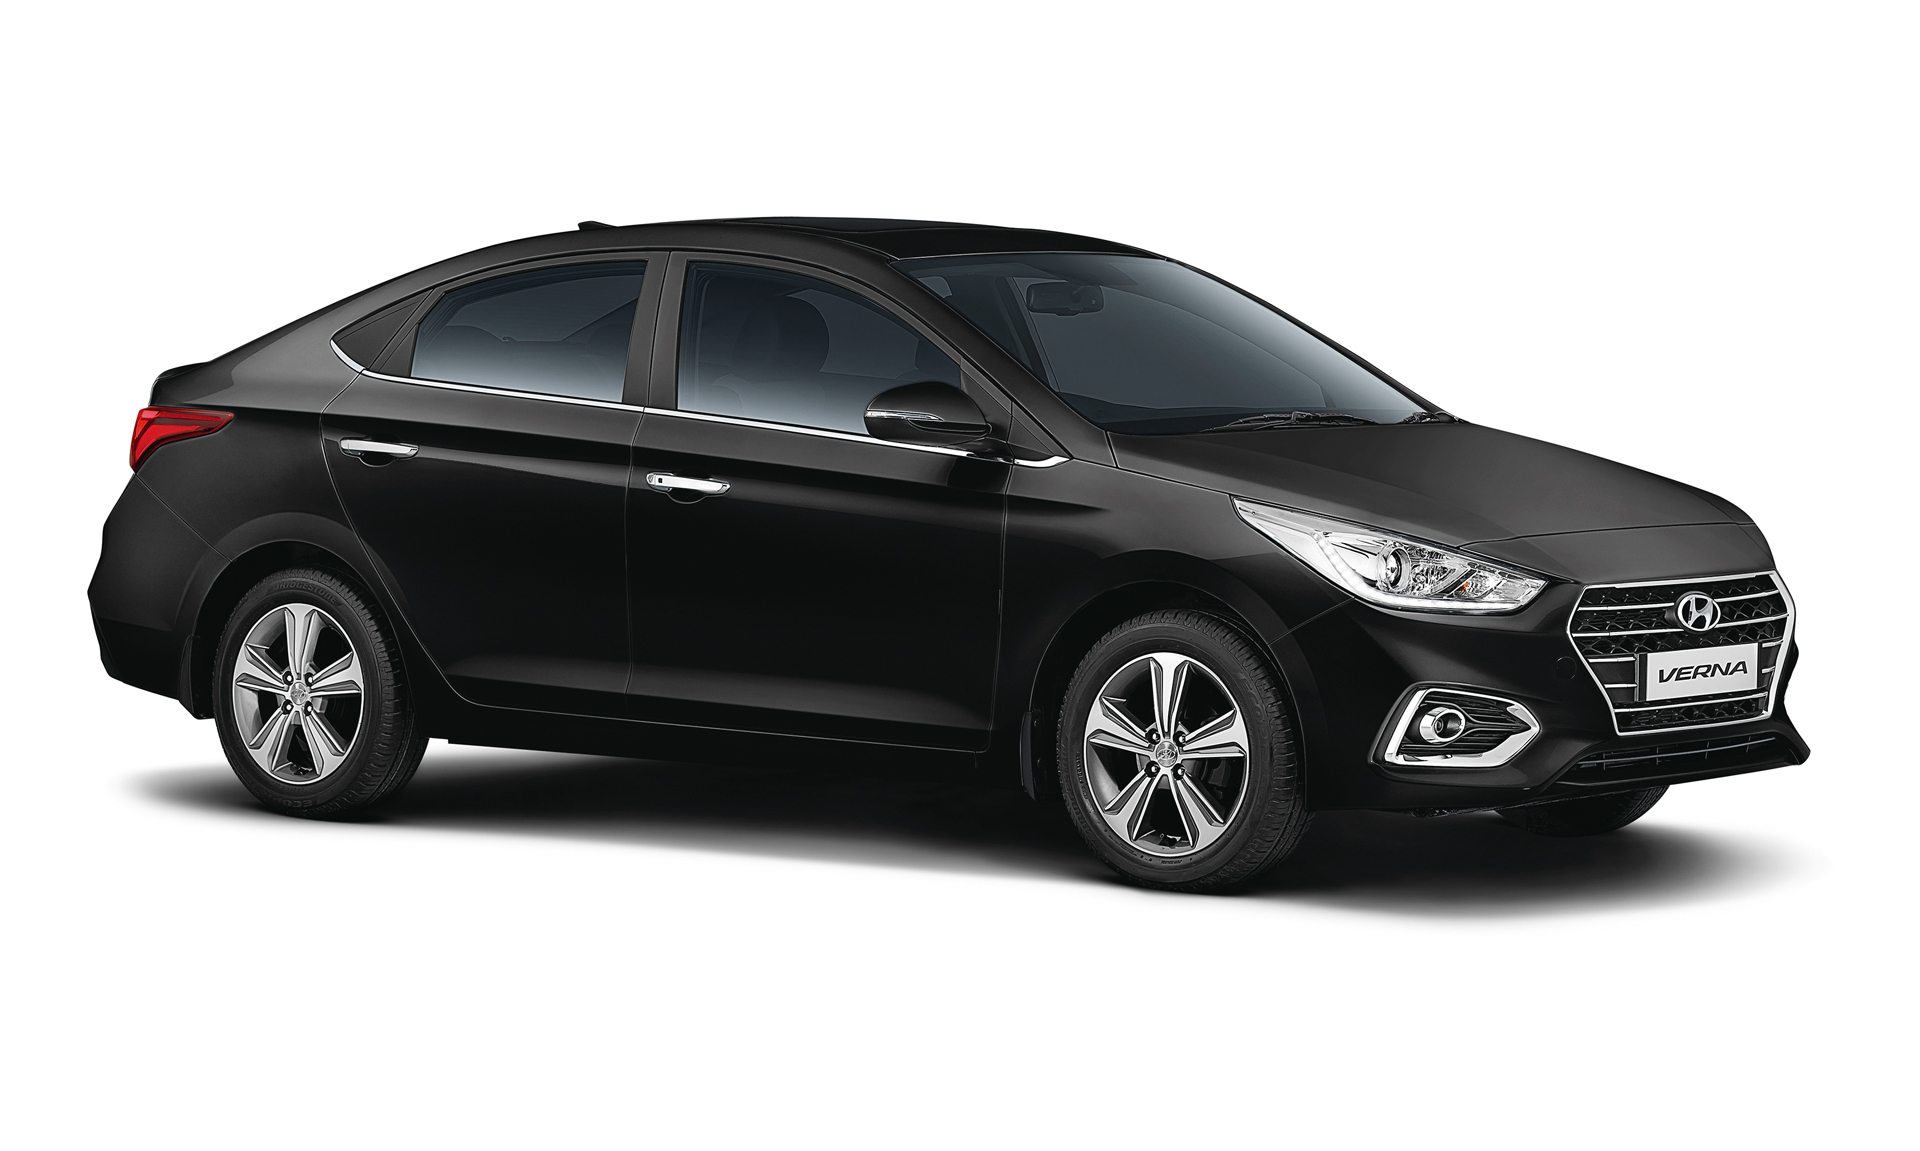 Hyundai launches the 5th Gen Verna in India